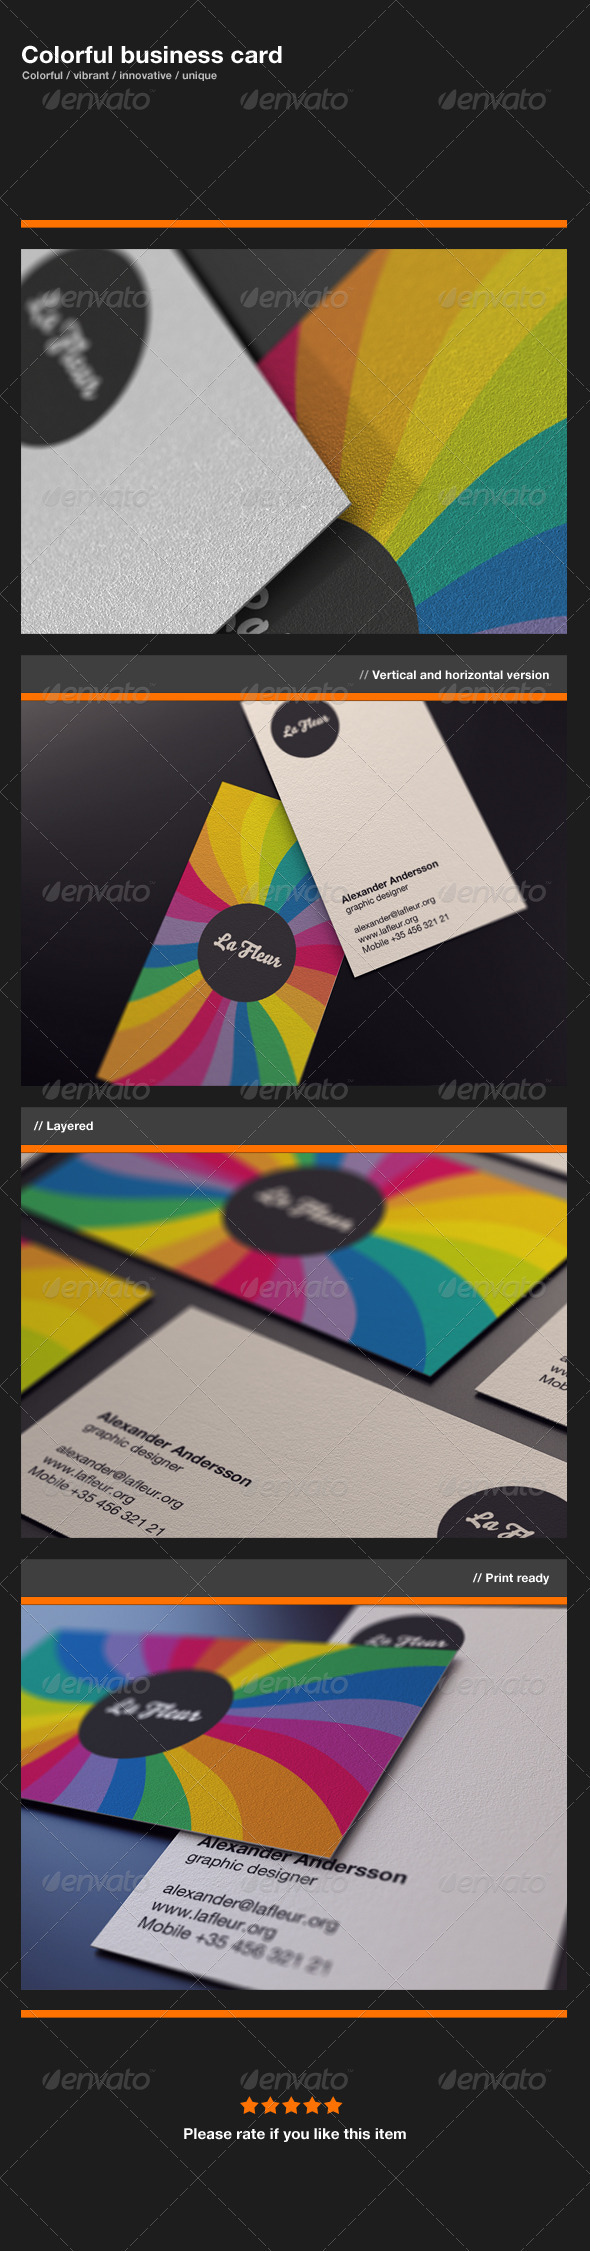 GraphicRiver Colorful Business Card 336352